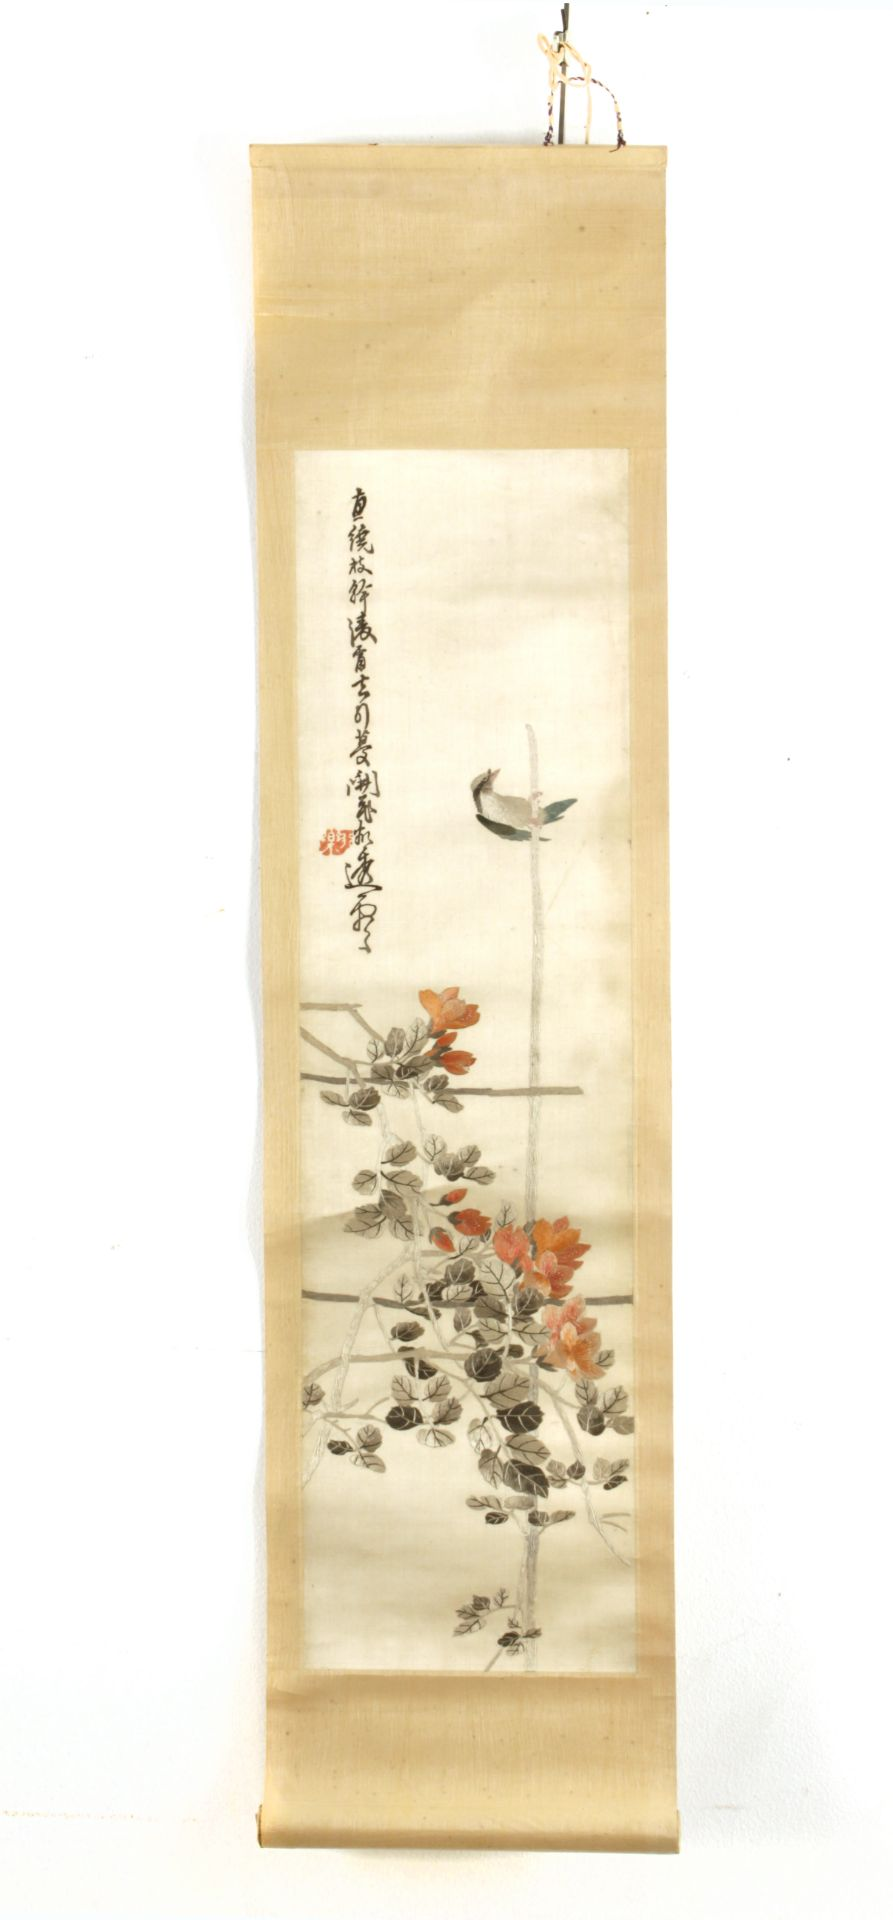 Los 100 - A 20th century Chinese scroll depicting roses and a bird embroidered on silk